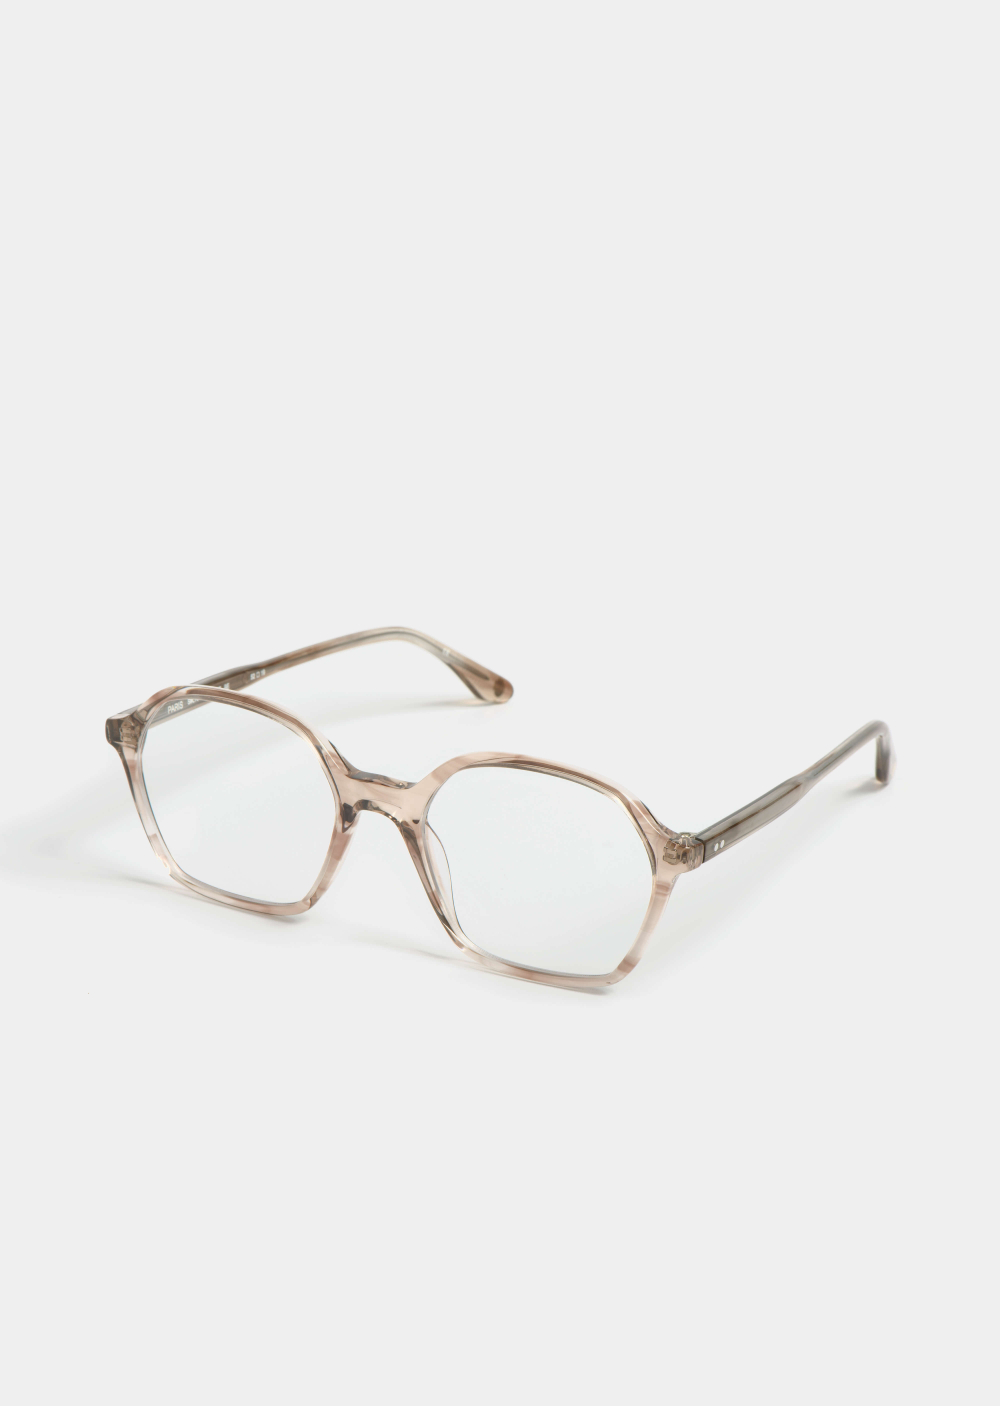 PETER AND MAY -  - LT5 Colette RX beige